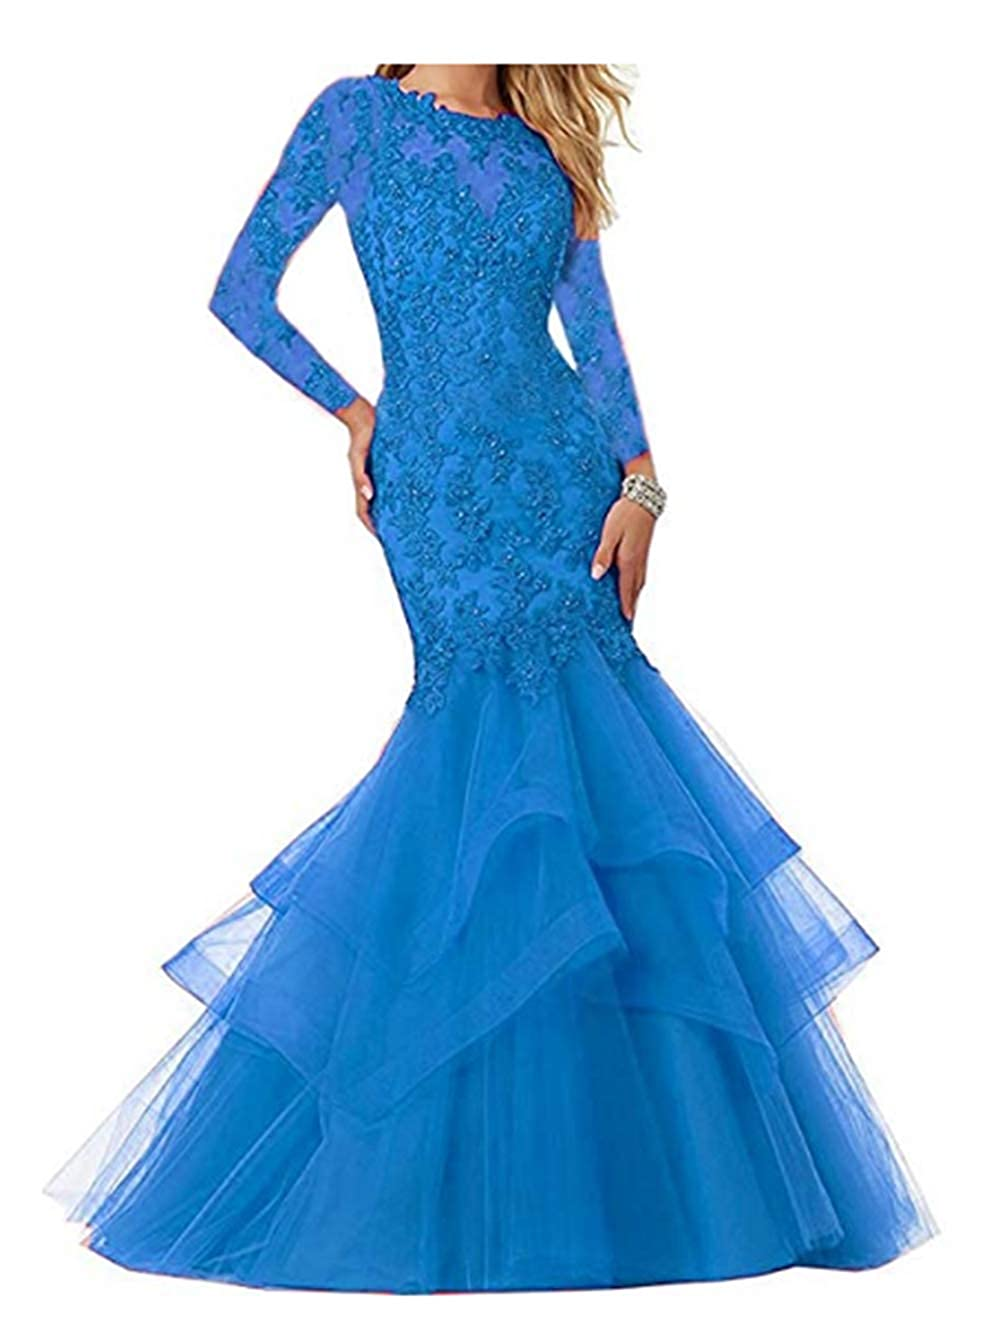 bluee FWVR Women's Mermaid Appliques Prom Dresses Long Sleeves Evening Wedding Party Gowns